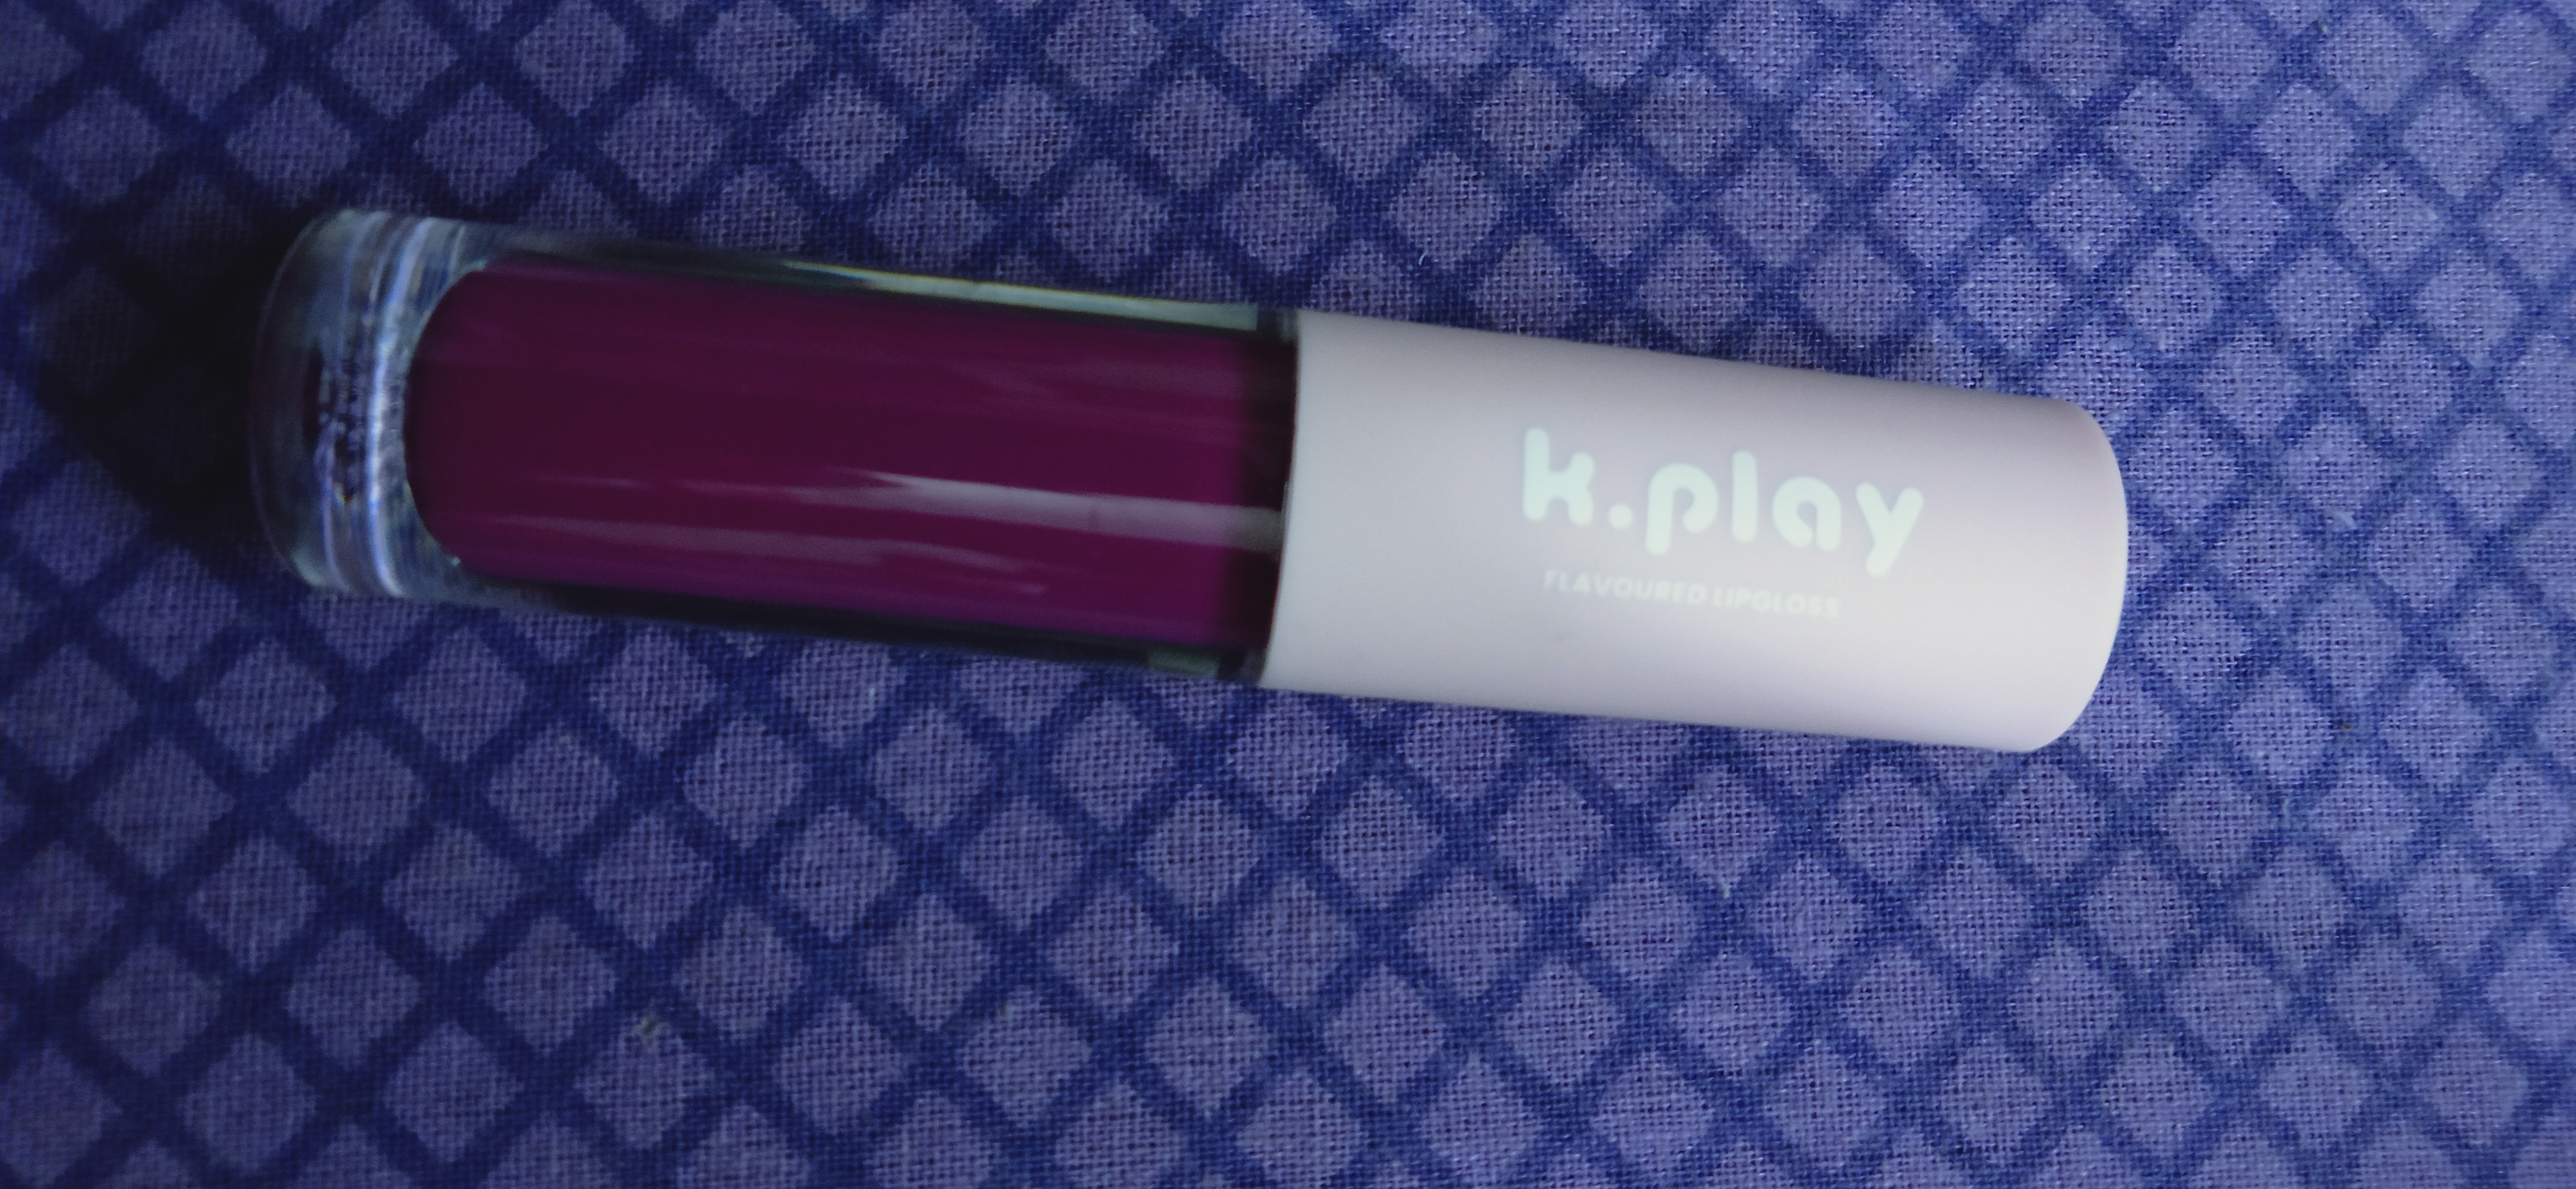 MyGlamm K.PLAY FLAVOURED LIPGLOSS – BERRY BLAST-Glossy lips-By that_browngirl-2